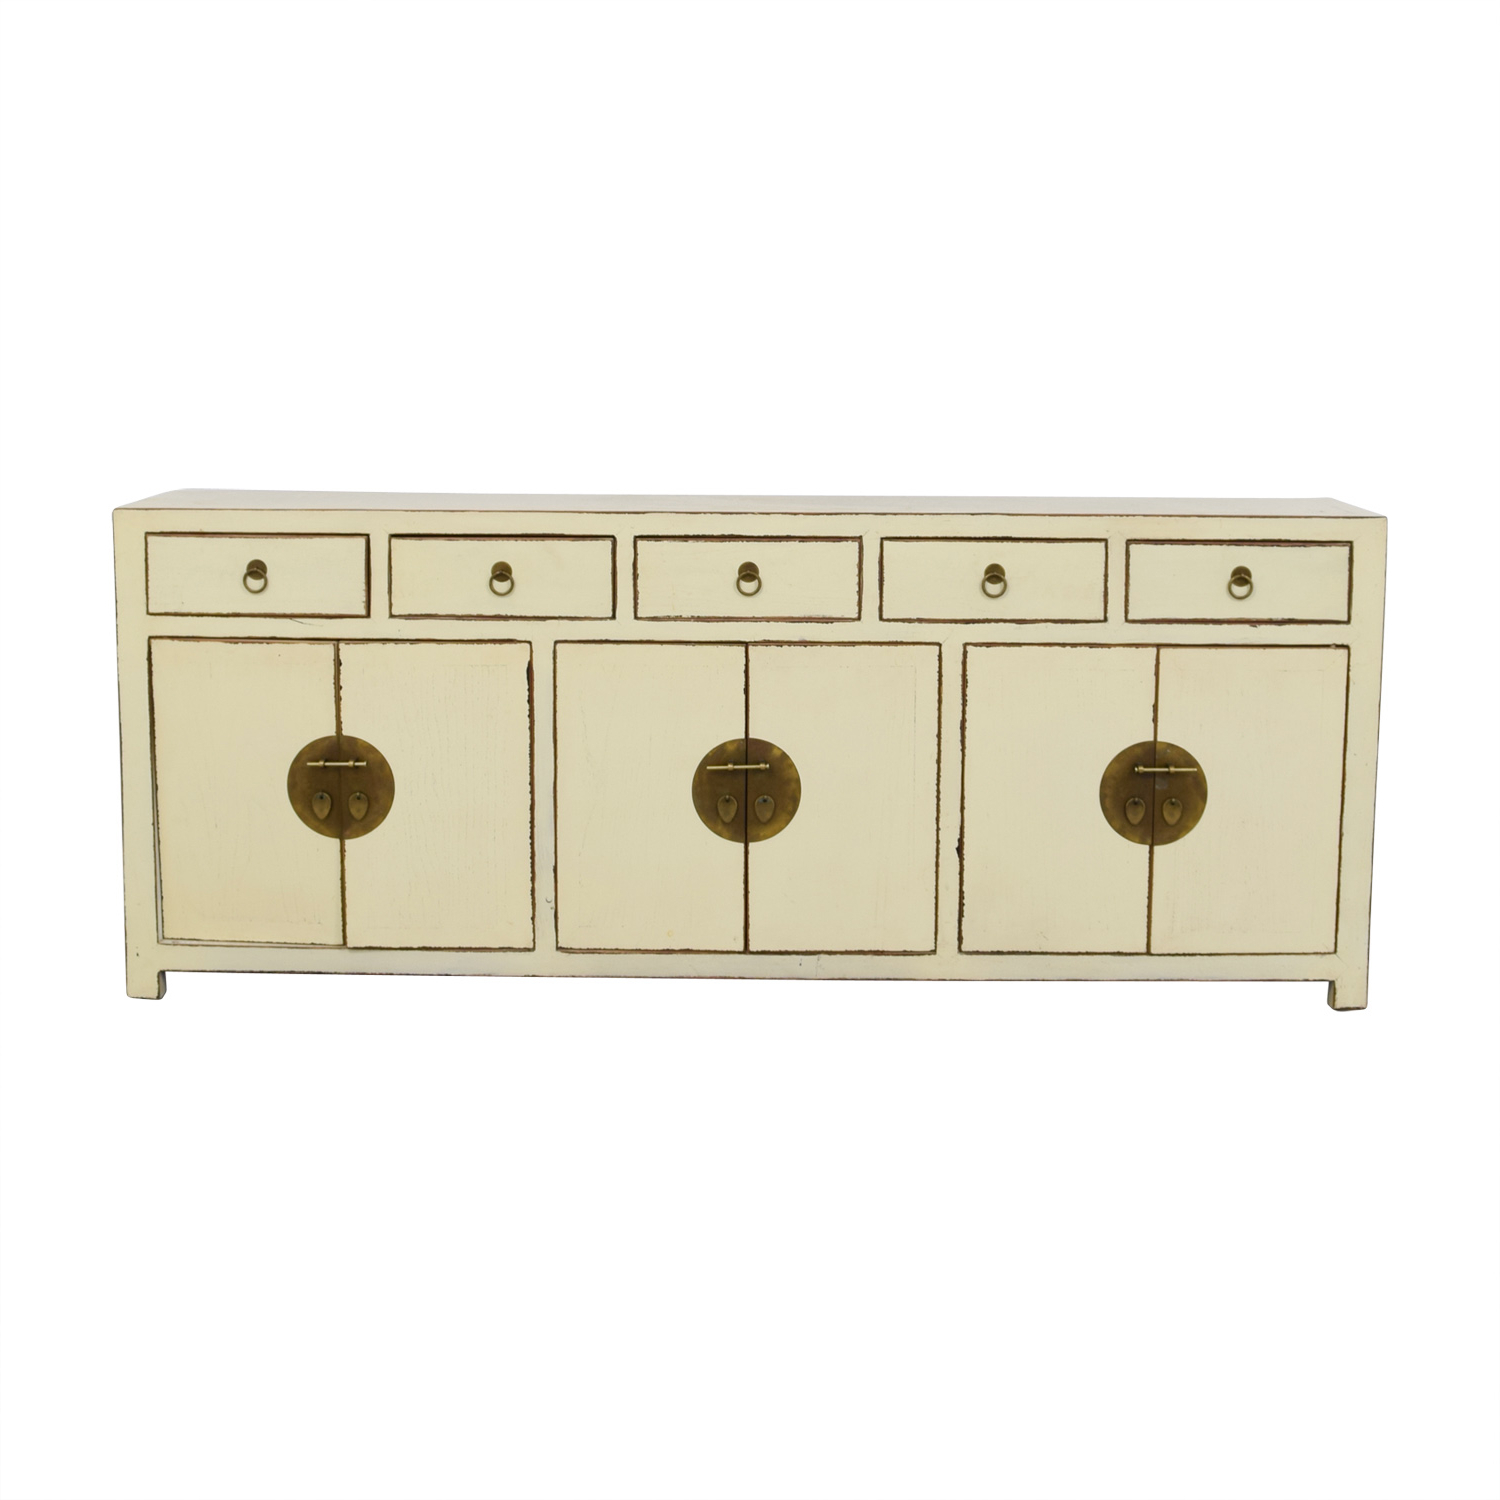 [%72% Off – Asian Barn Asian Barn Custom Cream Five Drawer Sideboard With  Shelves / Storage Throughout Preferred Seven Seas Asian Sideboards|Seven Seas Asian Sideboards Within Most Current 72% Off – Asian Barn Asian Barn Custom Cream Five Drawer Sideboard With  Shelves / Storage|Famous Seven Seas Asian Sideboards Within 72% Off – Asian Barn Asian Barn Custom Cream Five Drawer Sideboard With  Shelves / Storage|2019 72% Off – Asian Barn Asian Barn Custom Cream Five Drawer Sideboard With  Shelves / Storage In Seven Seas Asian Sideboards%] (View 4 of 20)